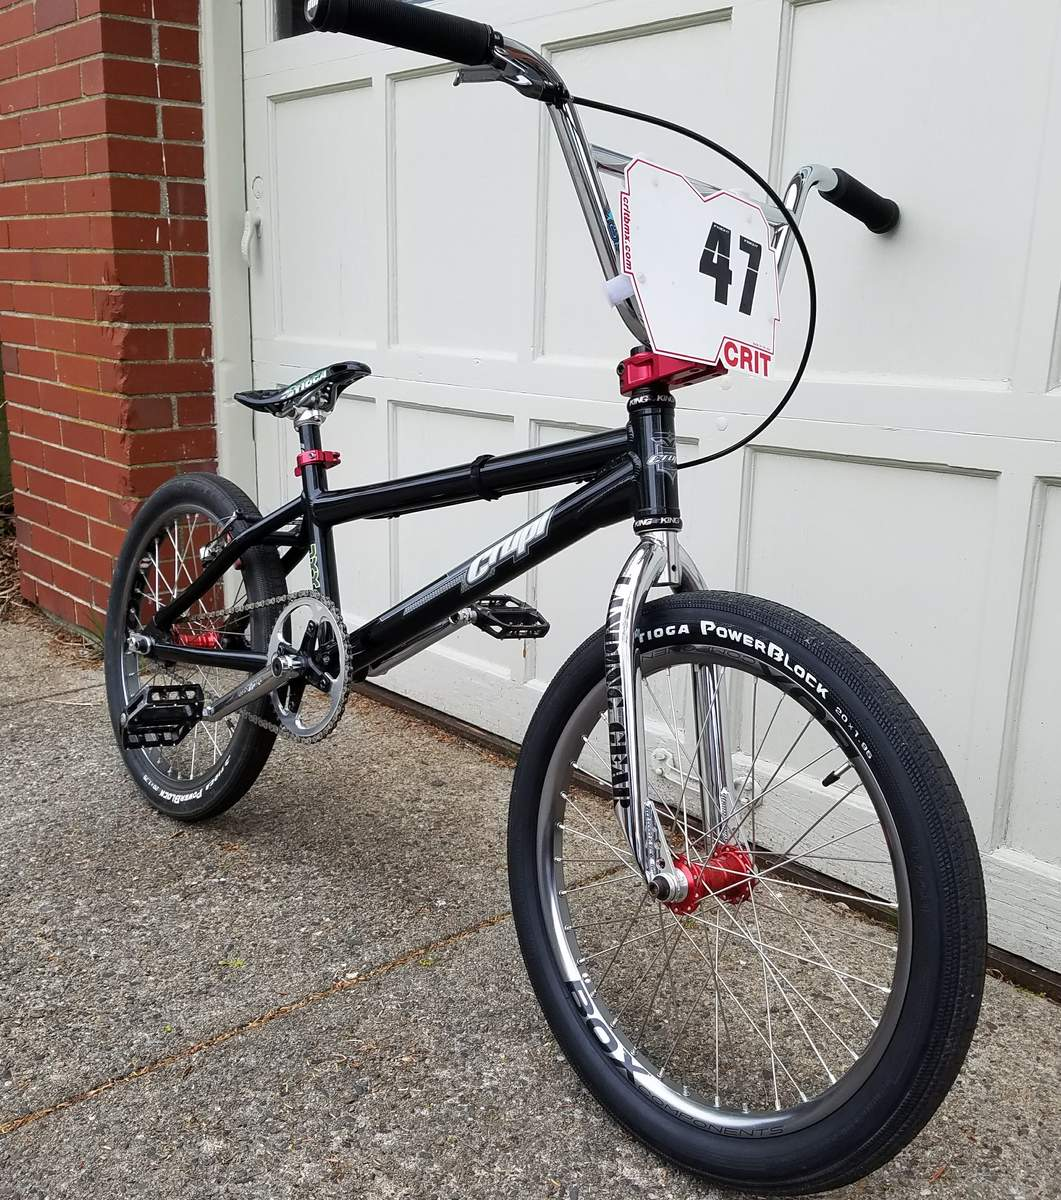 http://uploads.bmxmuseum.com/user-images/4388/20170424_163939590a233d6a.jpg